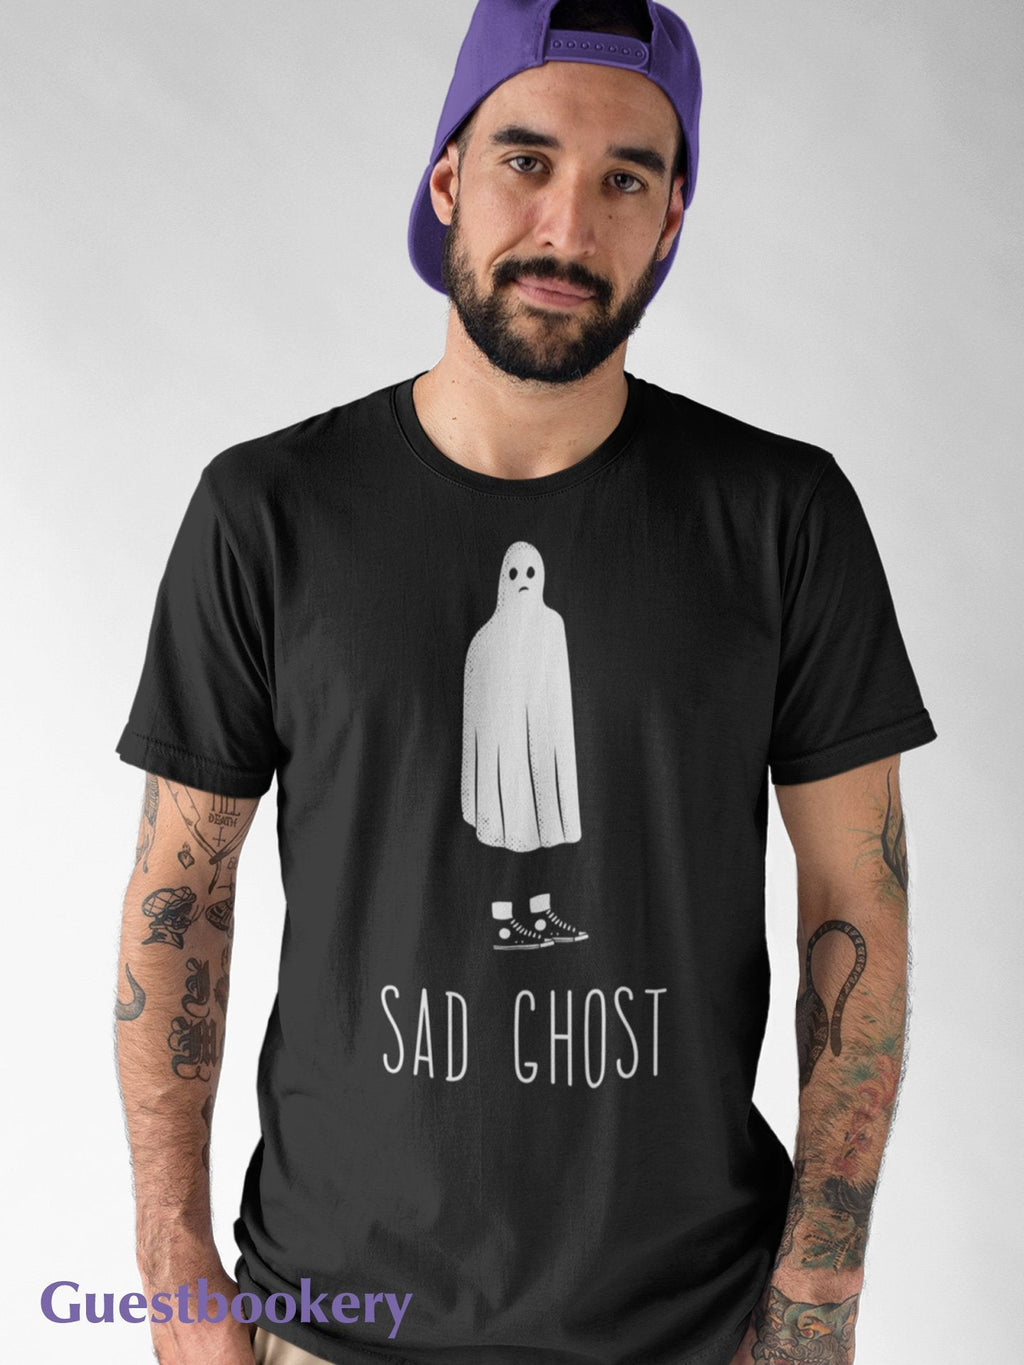 Sad Ghost T-shirt - Guestbookery